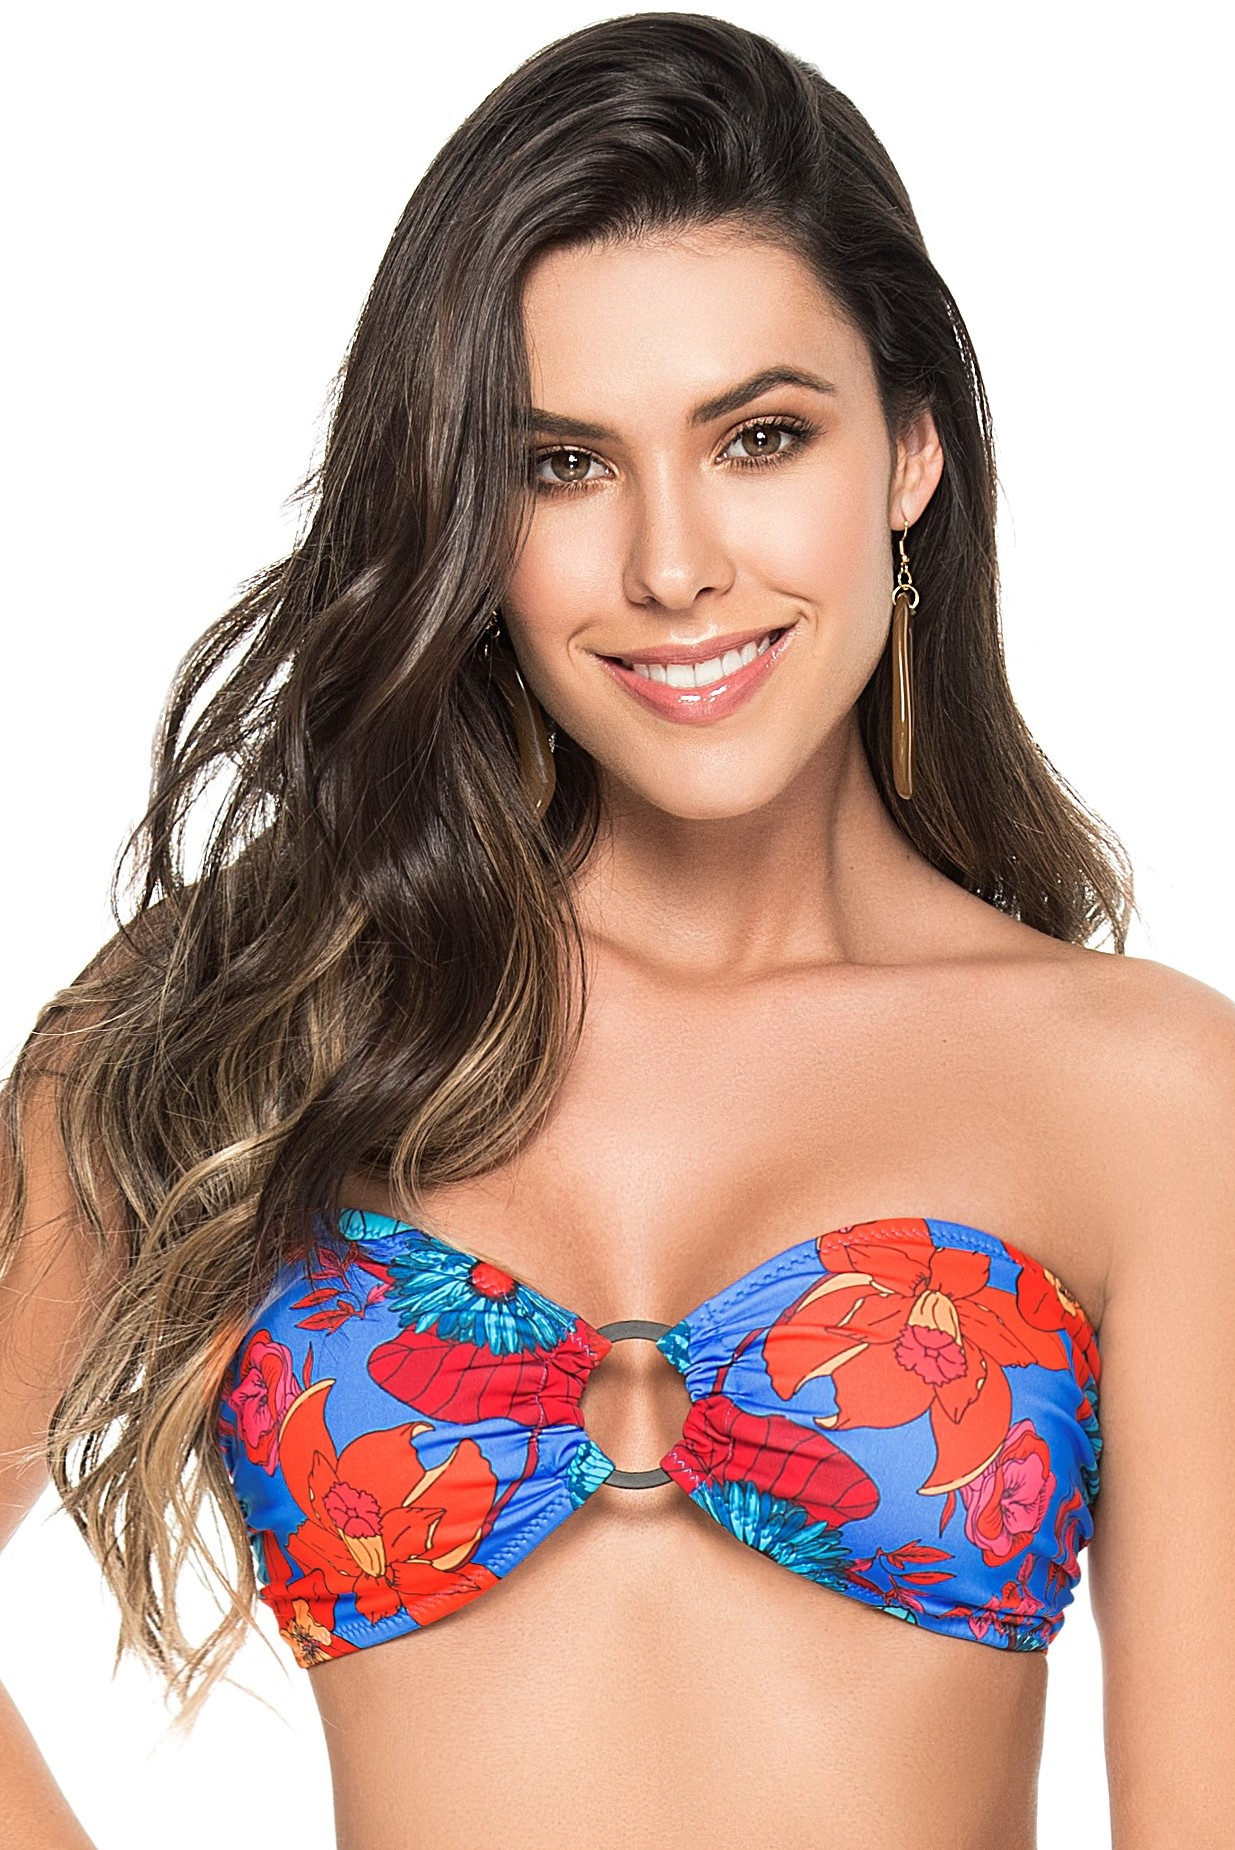 Phax Cool Breeze Strapless Bikini